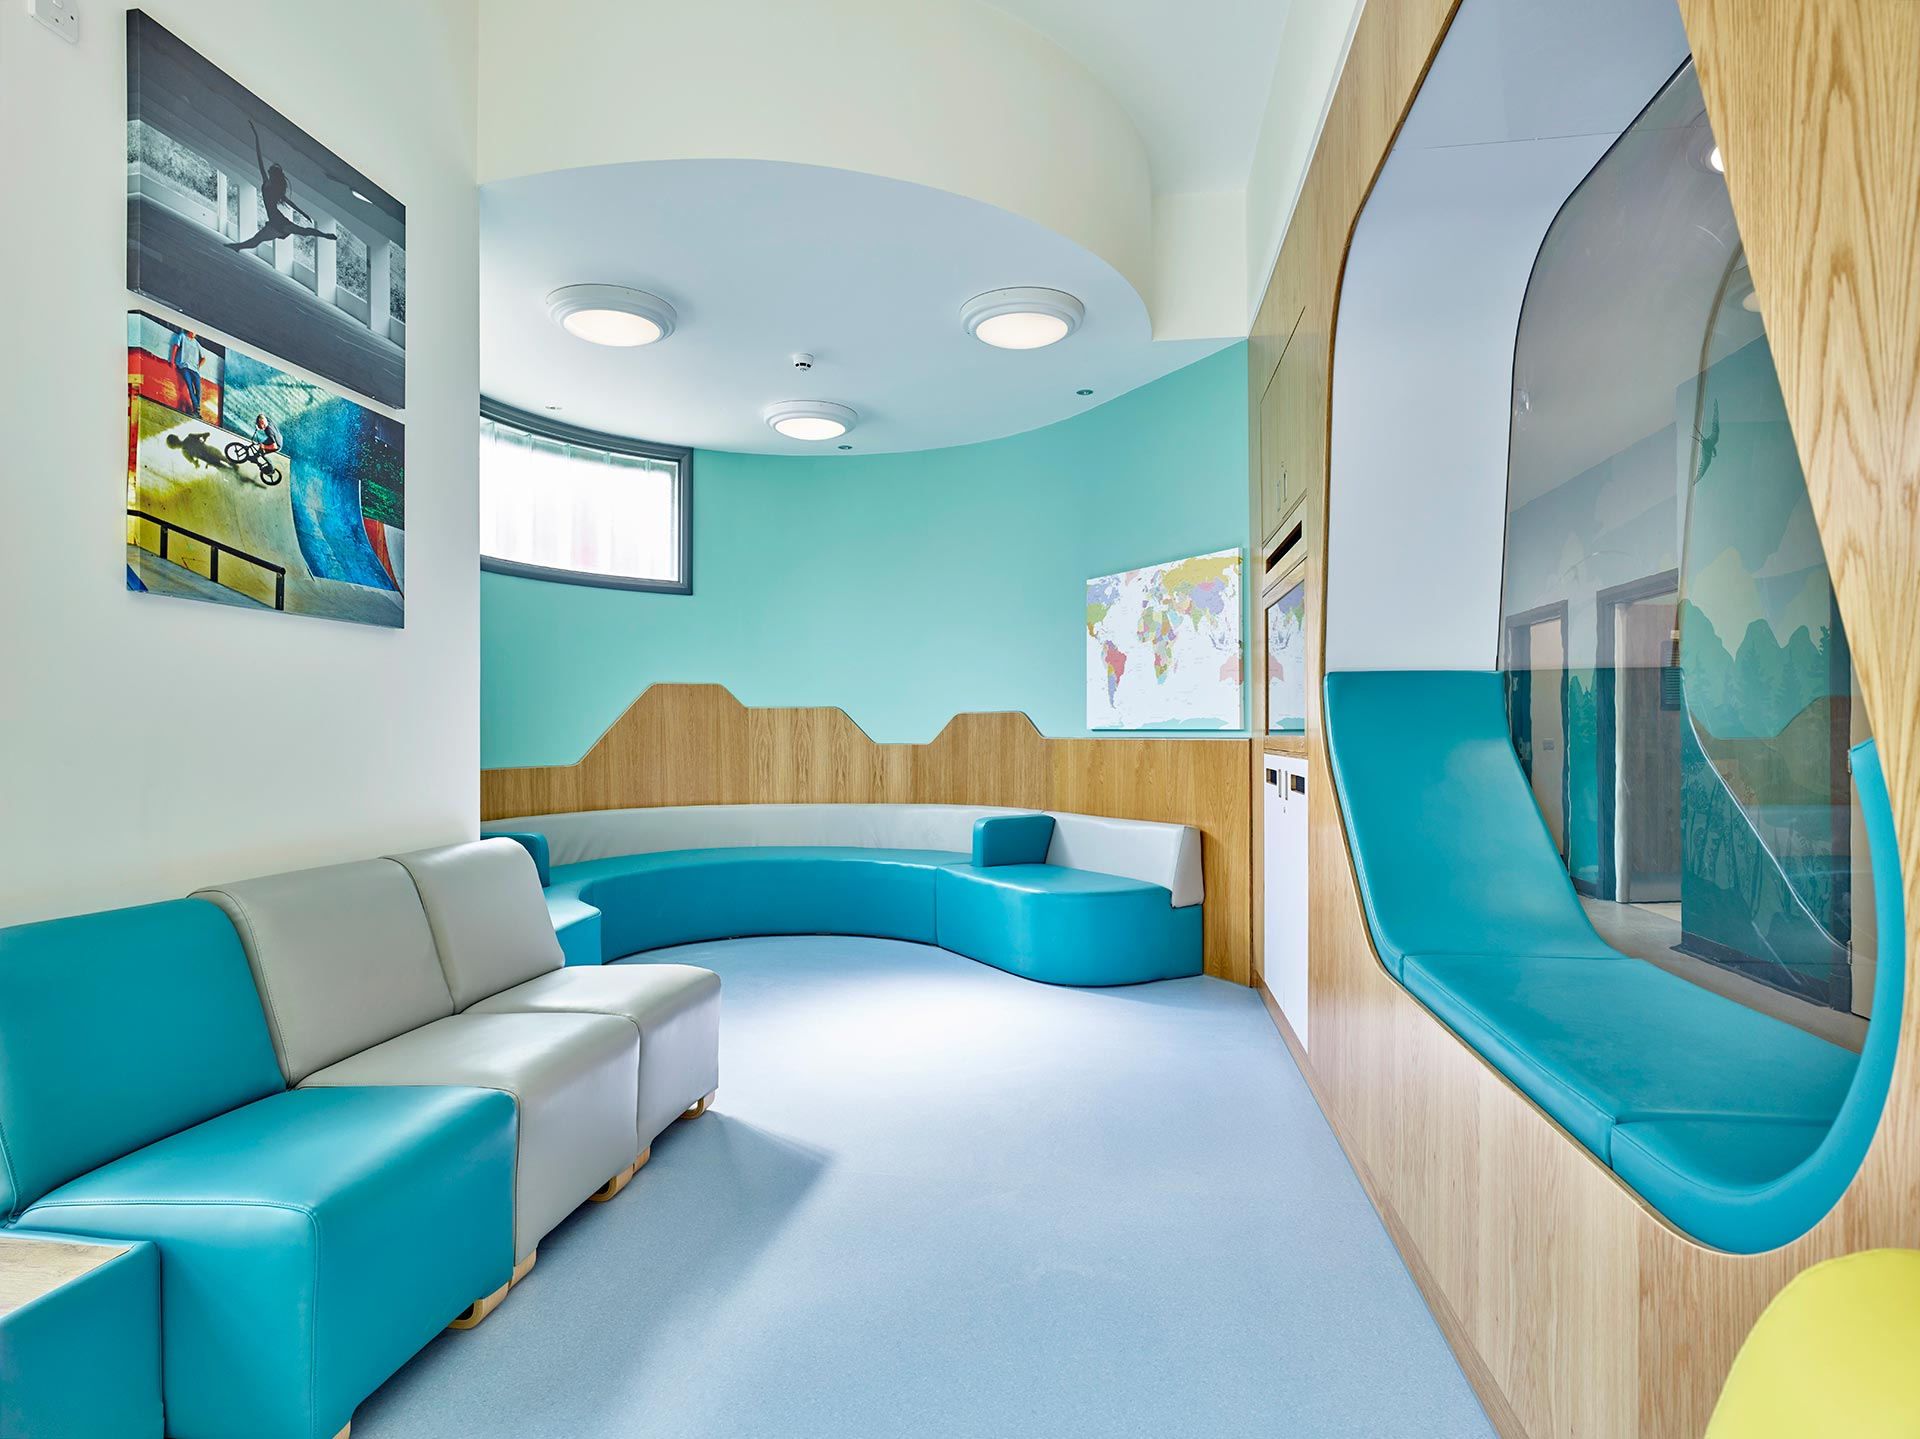 Anti ligature snug provides safe seating area for patients suffering mental health issues